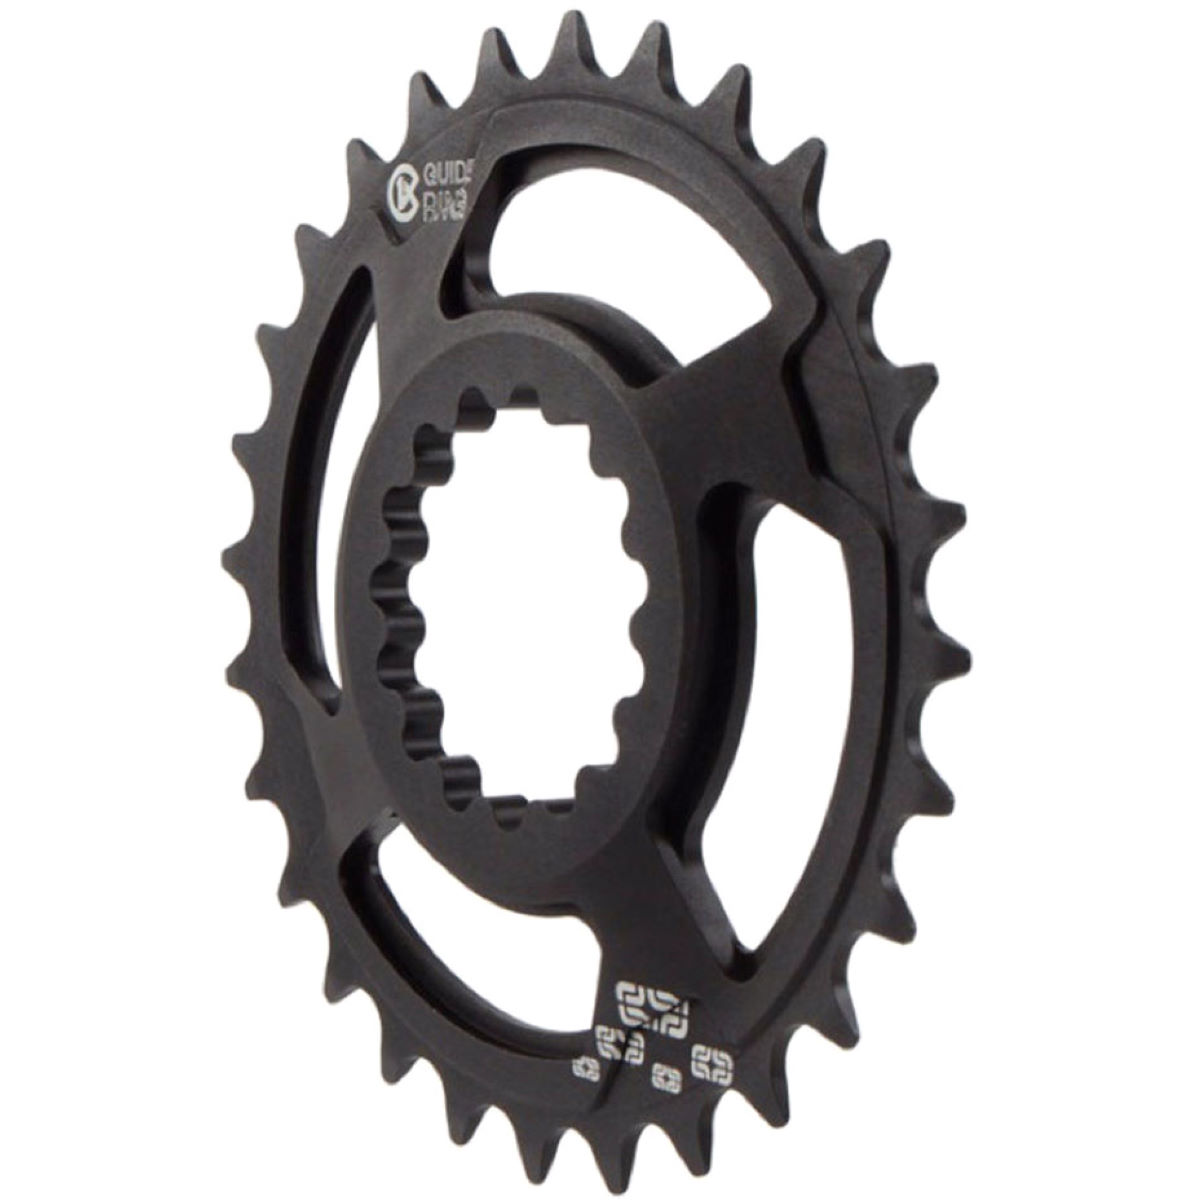 Plateau de guidage e.thirteen Fixation directe - 36t 9/10/11 Speed